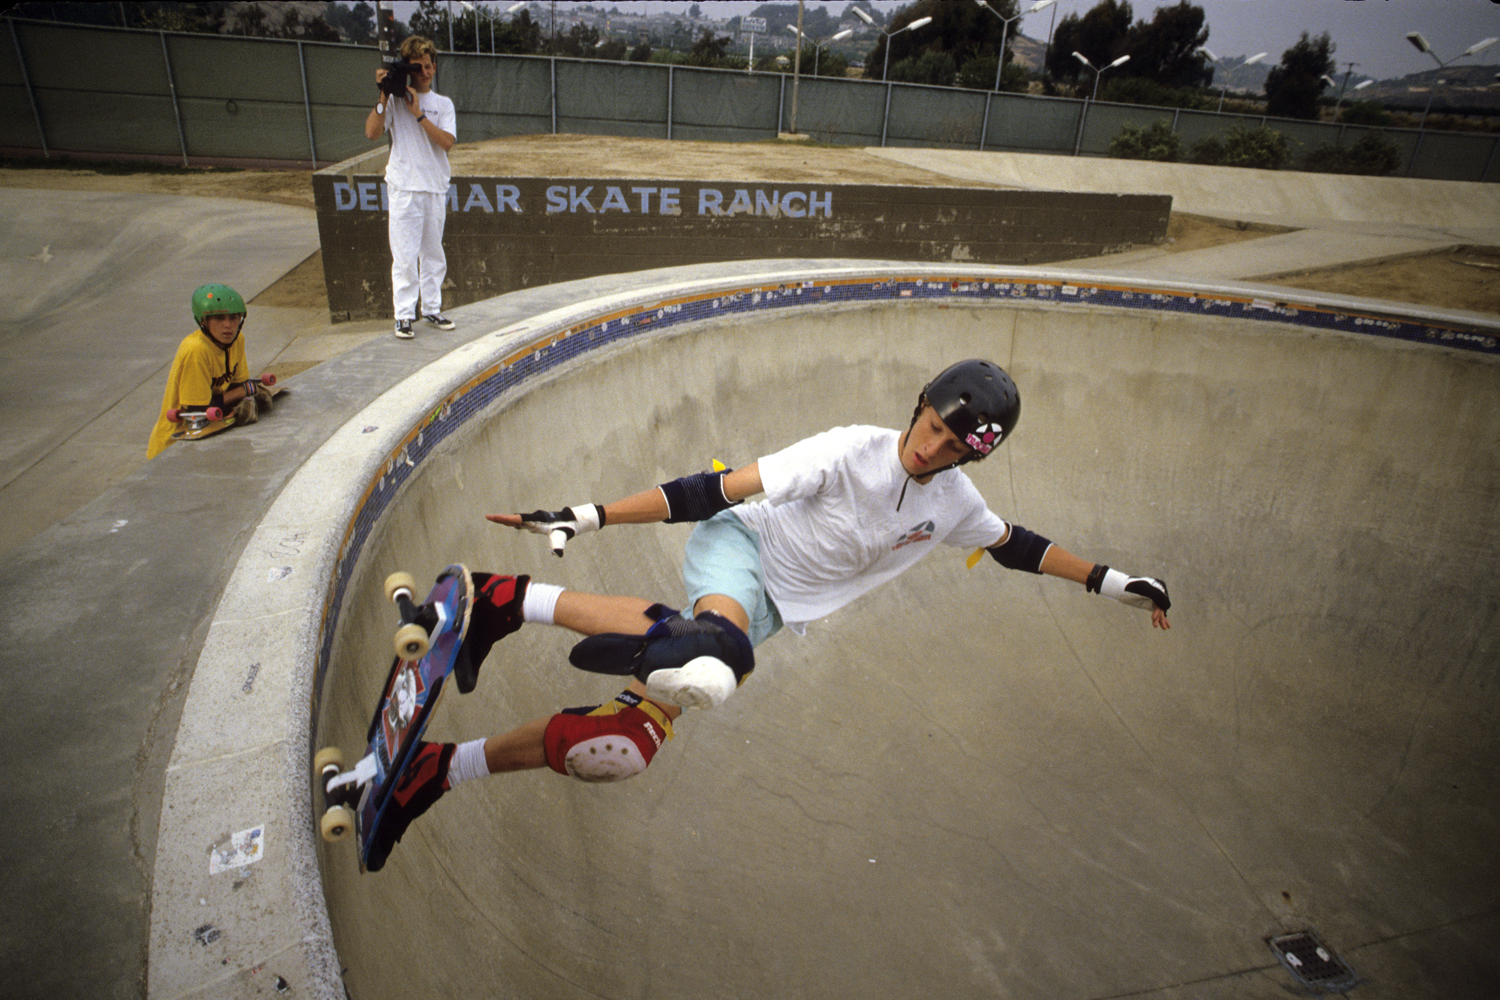 Tony Hawk in action at Del Mar Skate Ranch in 1986.